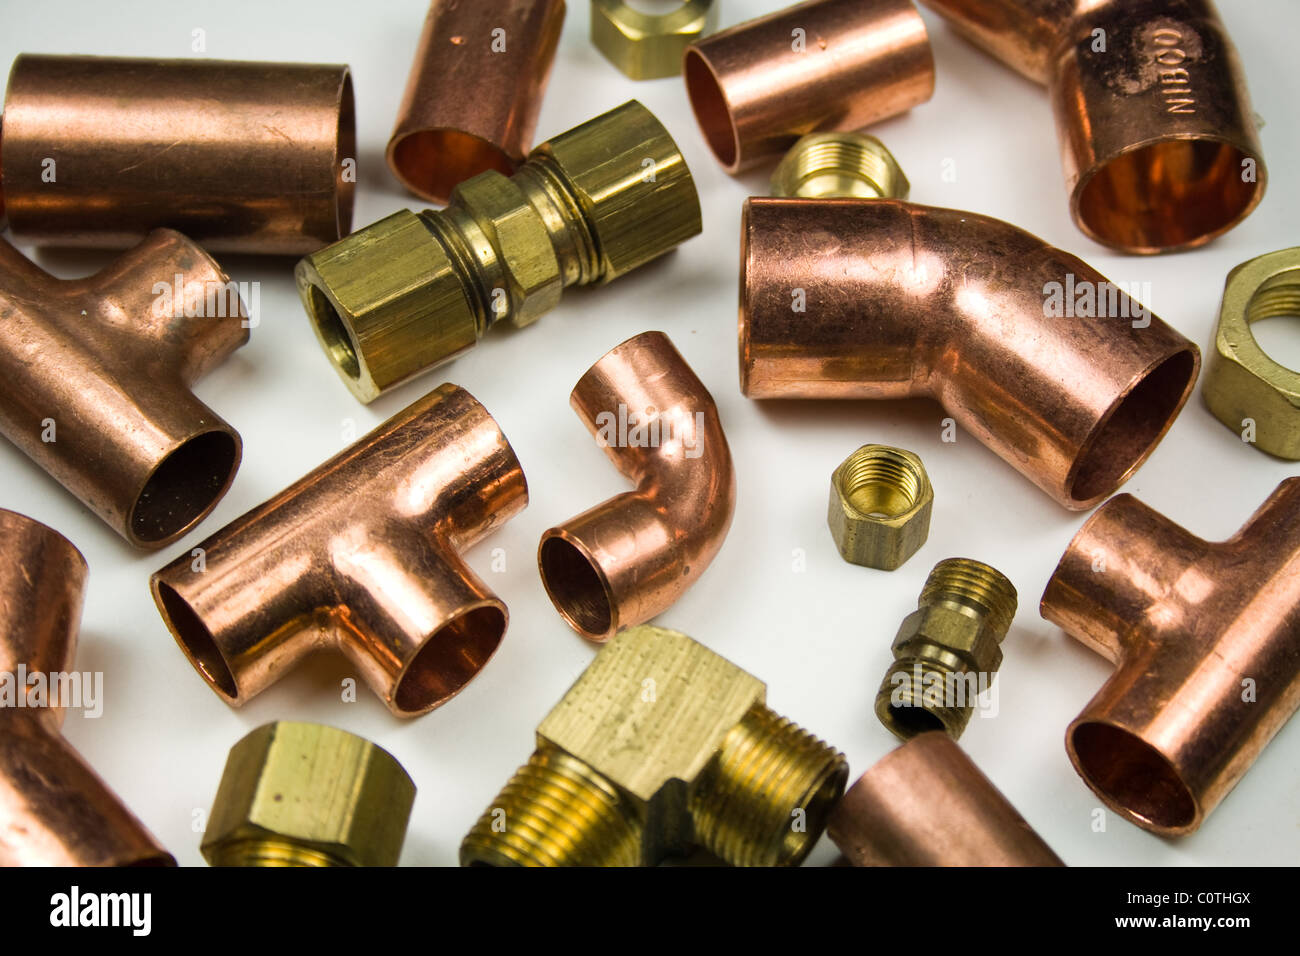 Copper and Brass Plumbing Connectors - Parts - Stock Image